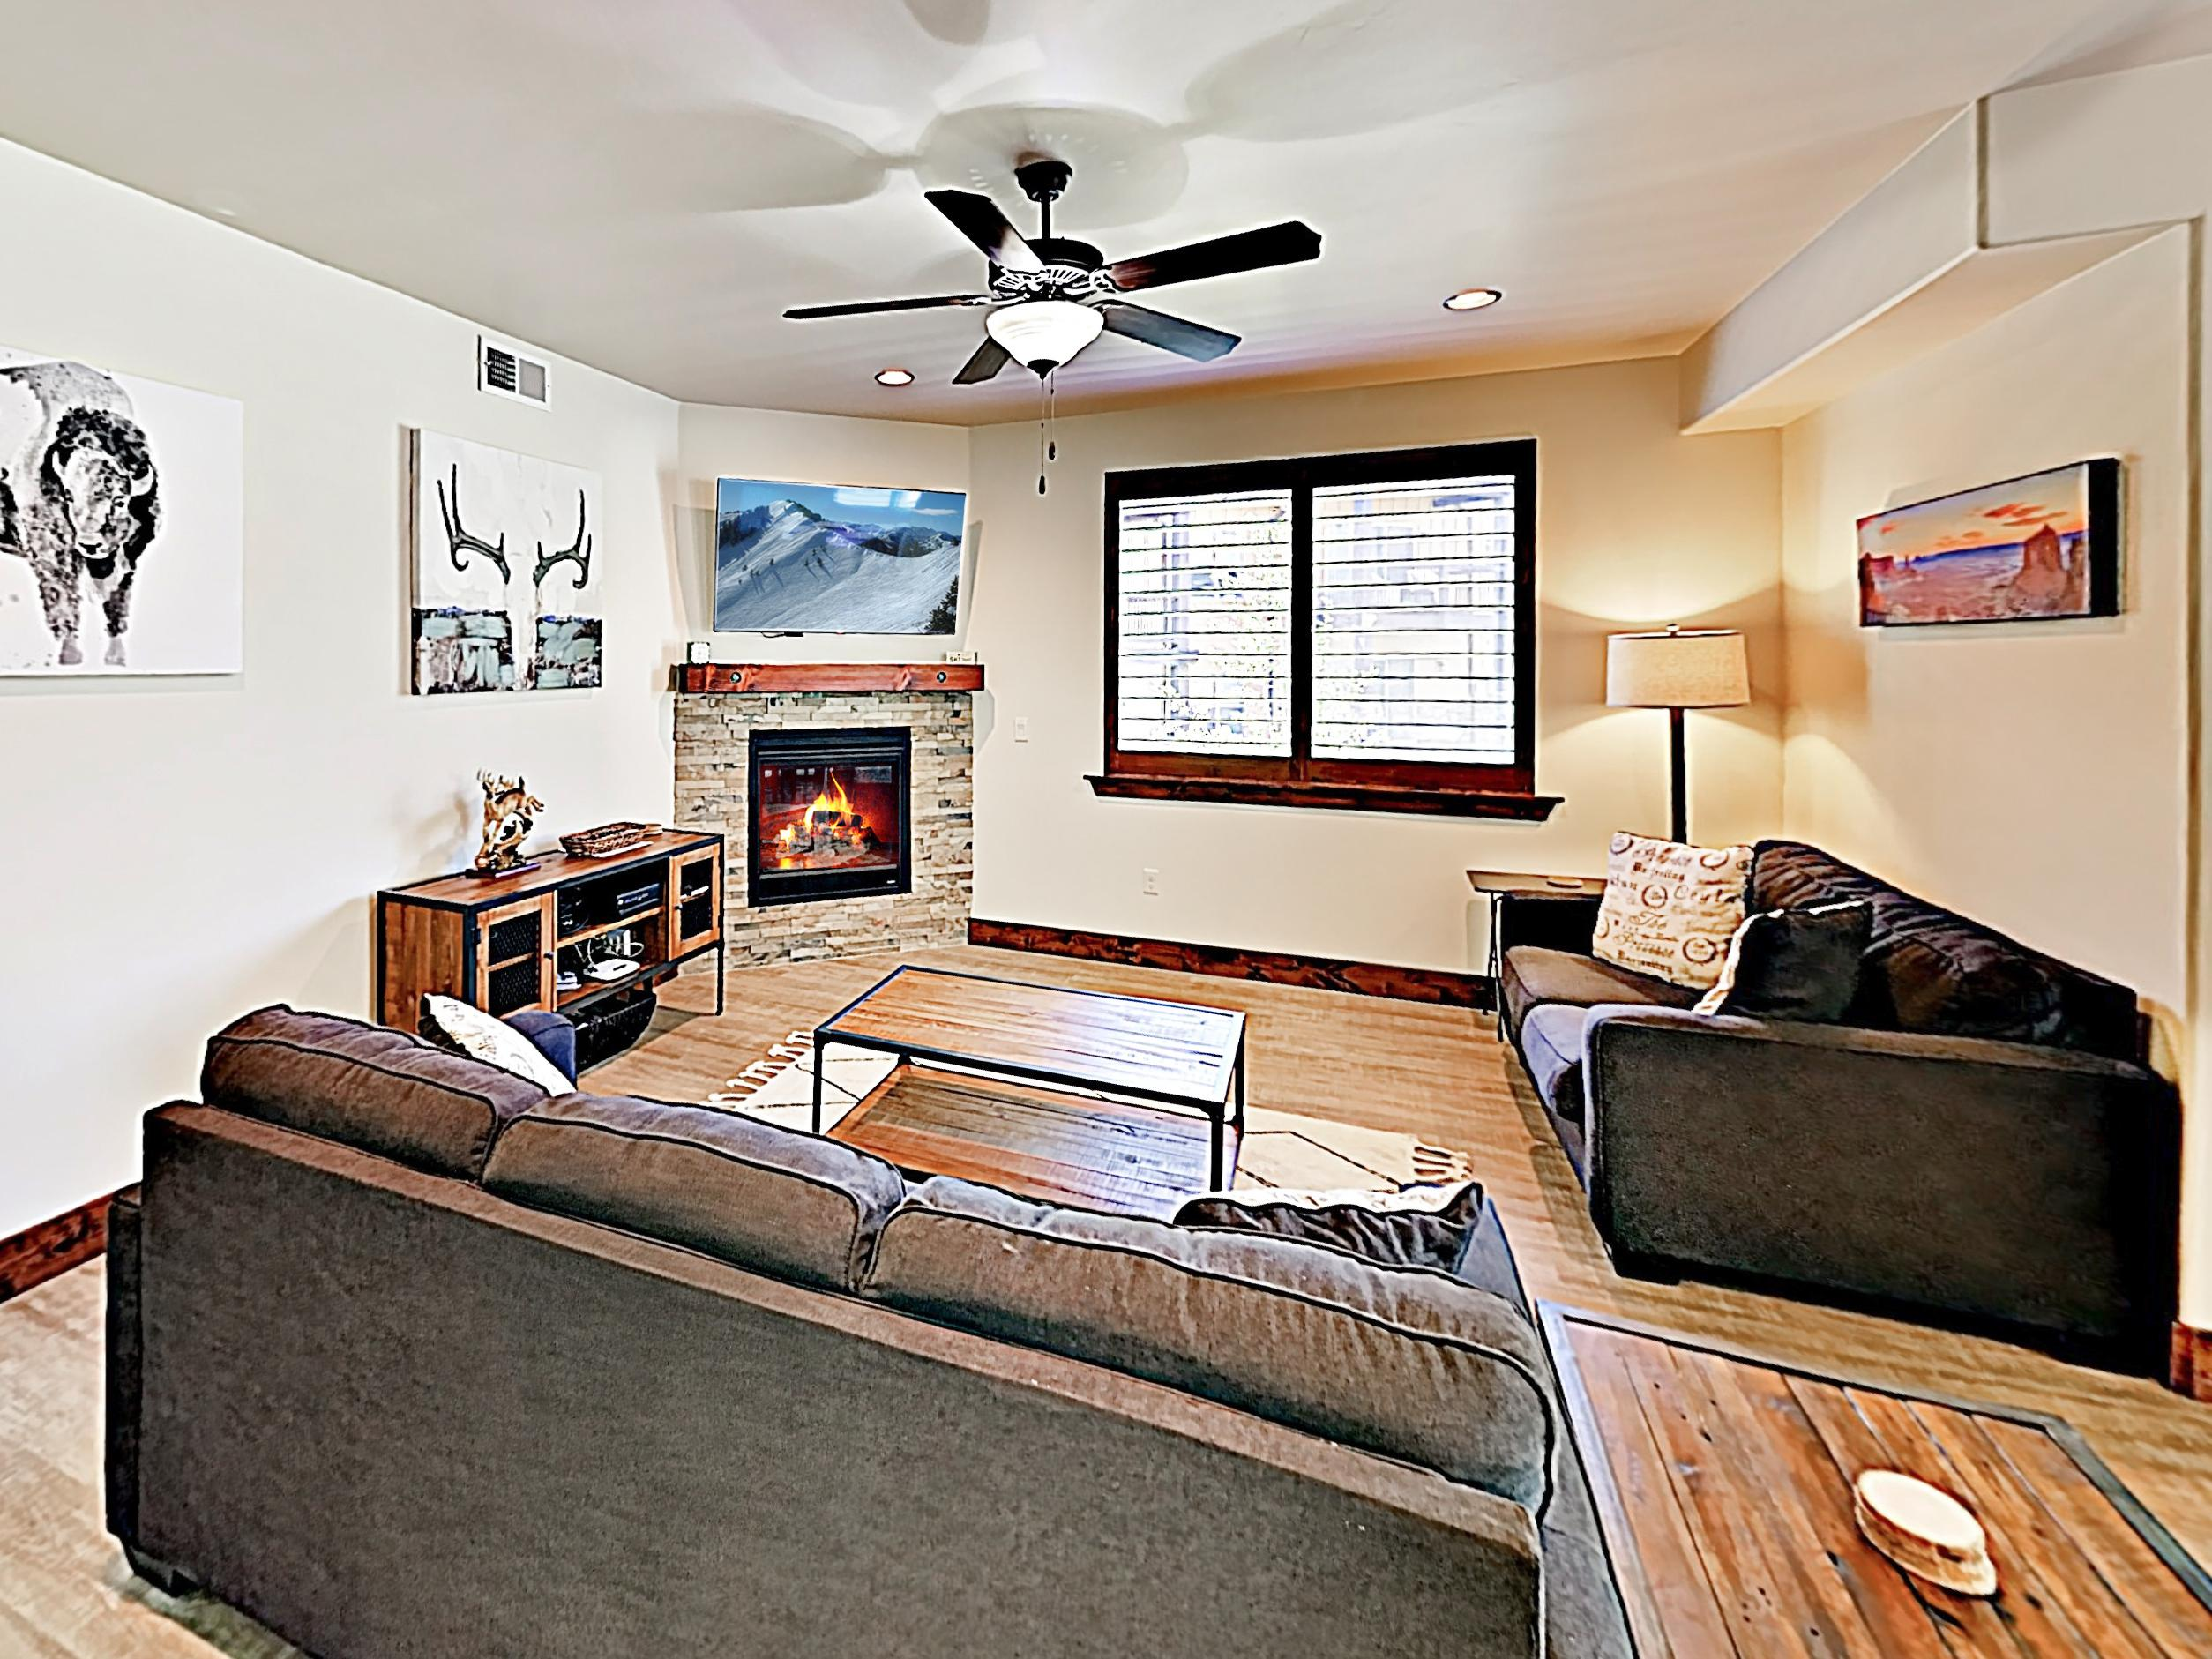 Welcome to Heber City! This condo is professionally managed by TurnKey Vacation Rentals.